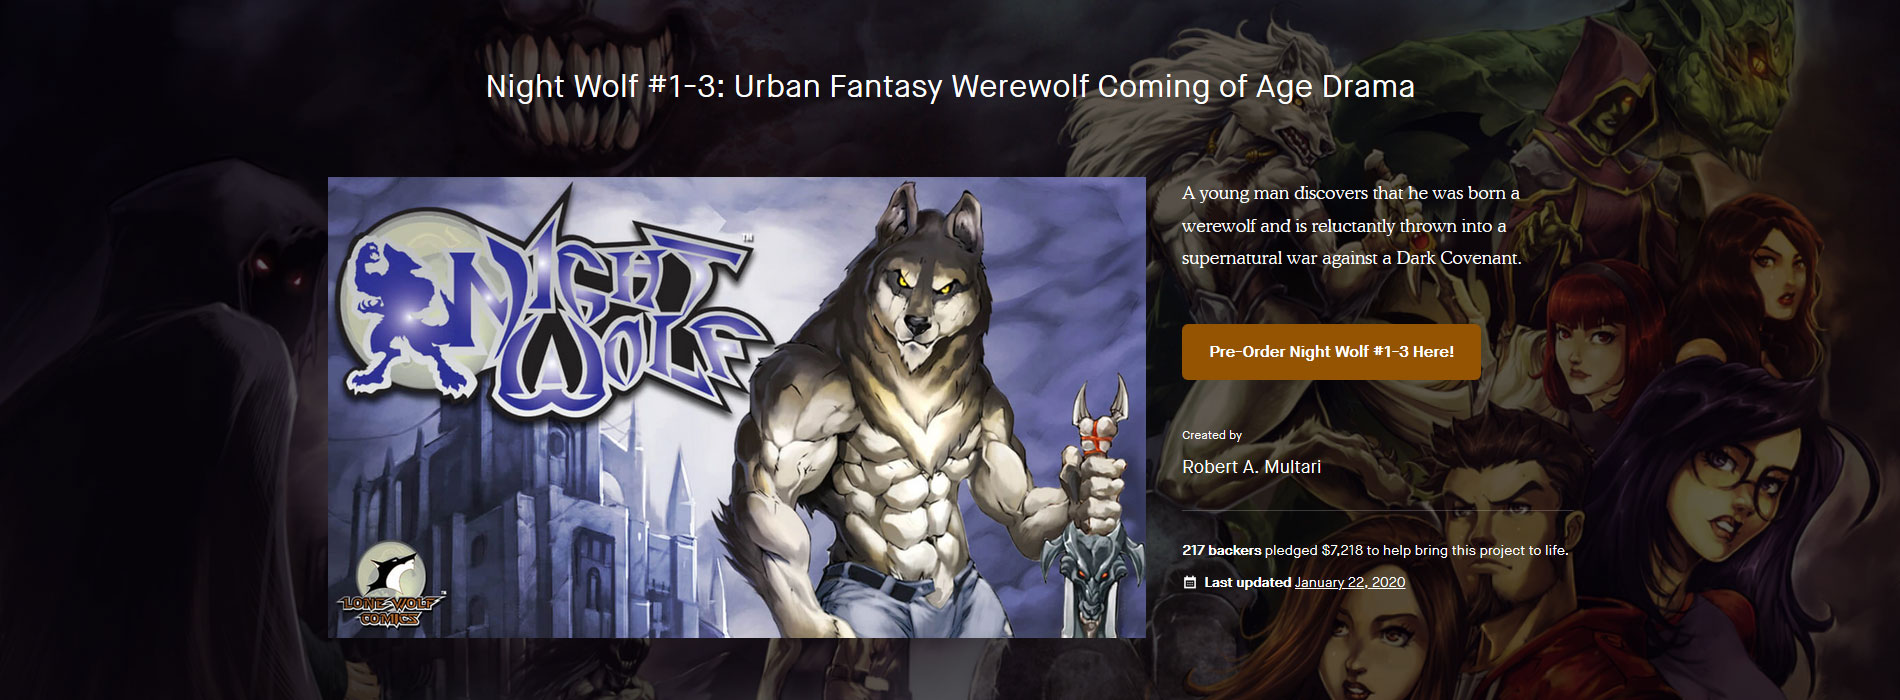 Night Wolf #1-3: Urban Fantasy Werewolf Coming of Age Drama Kickstarter